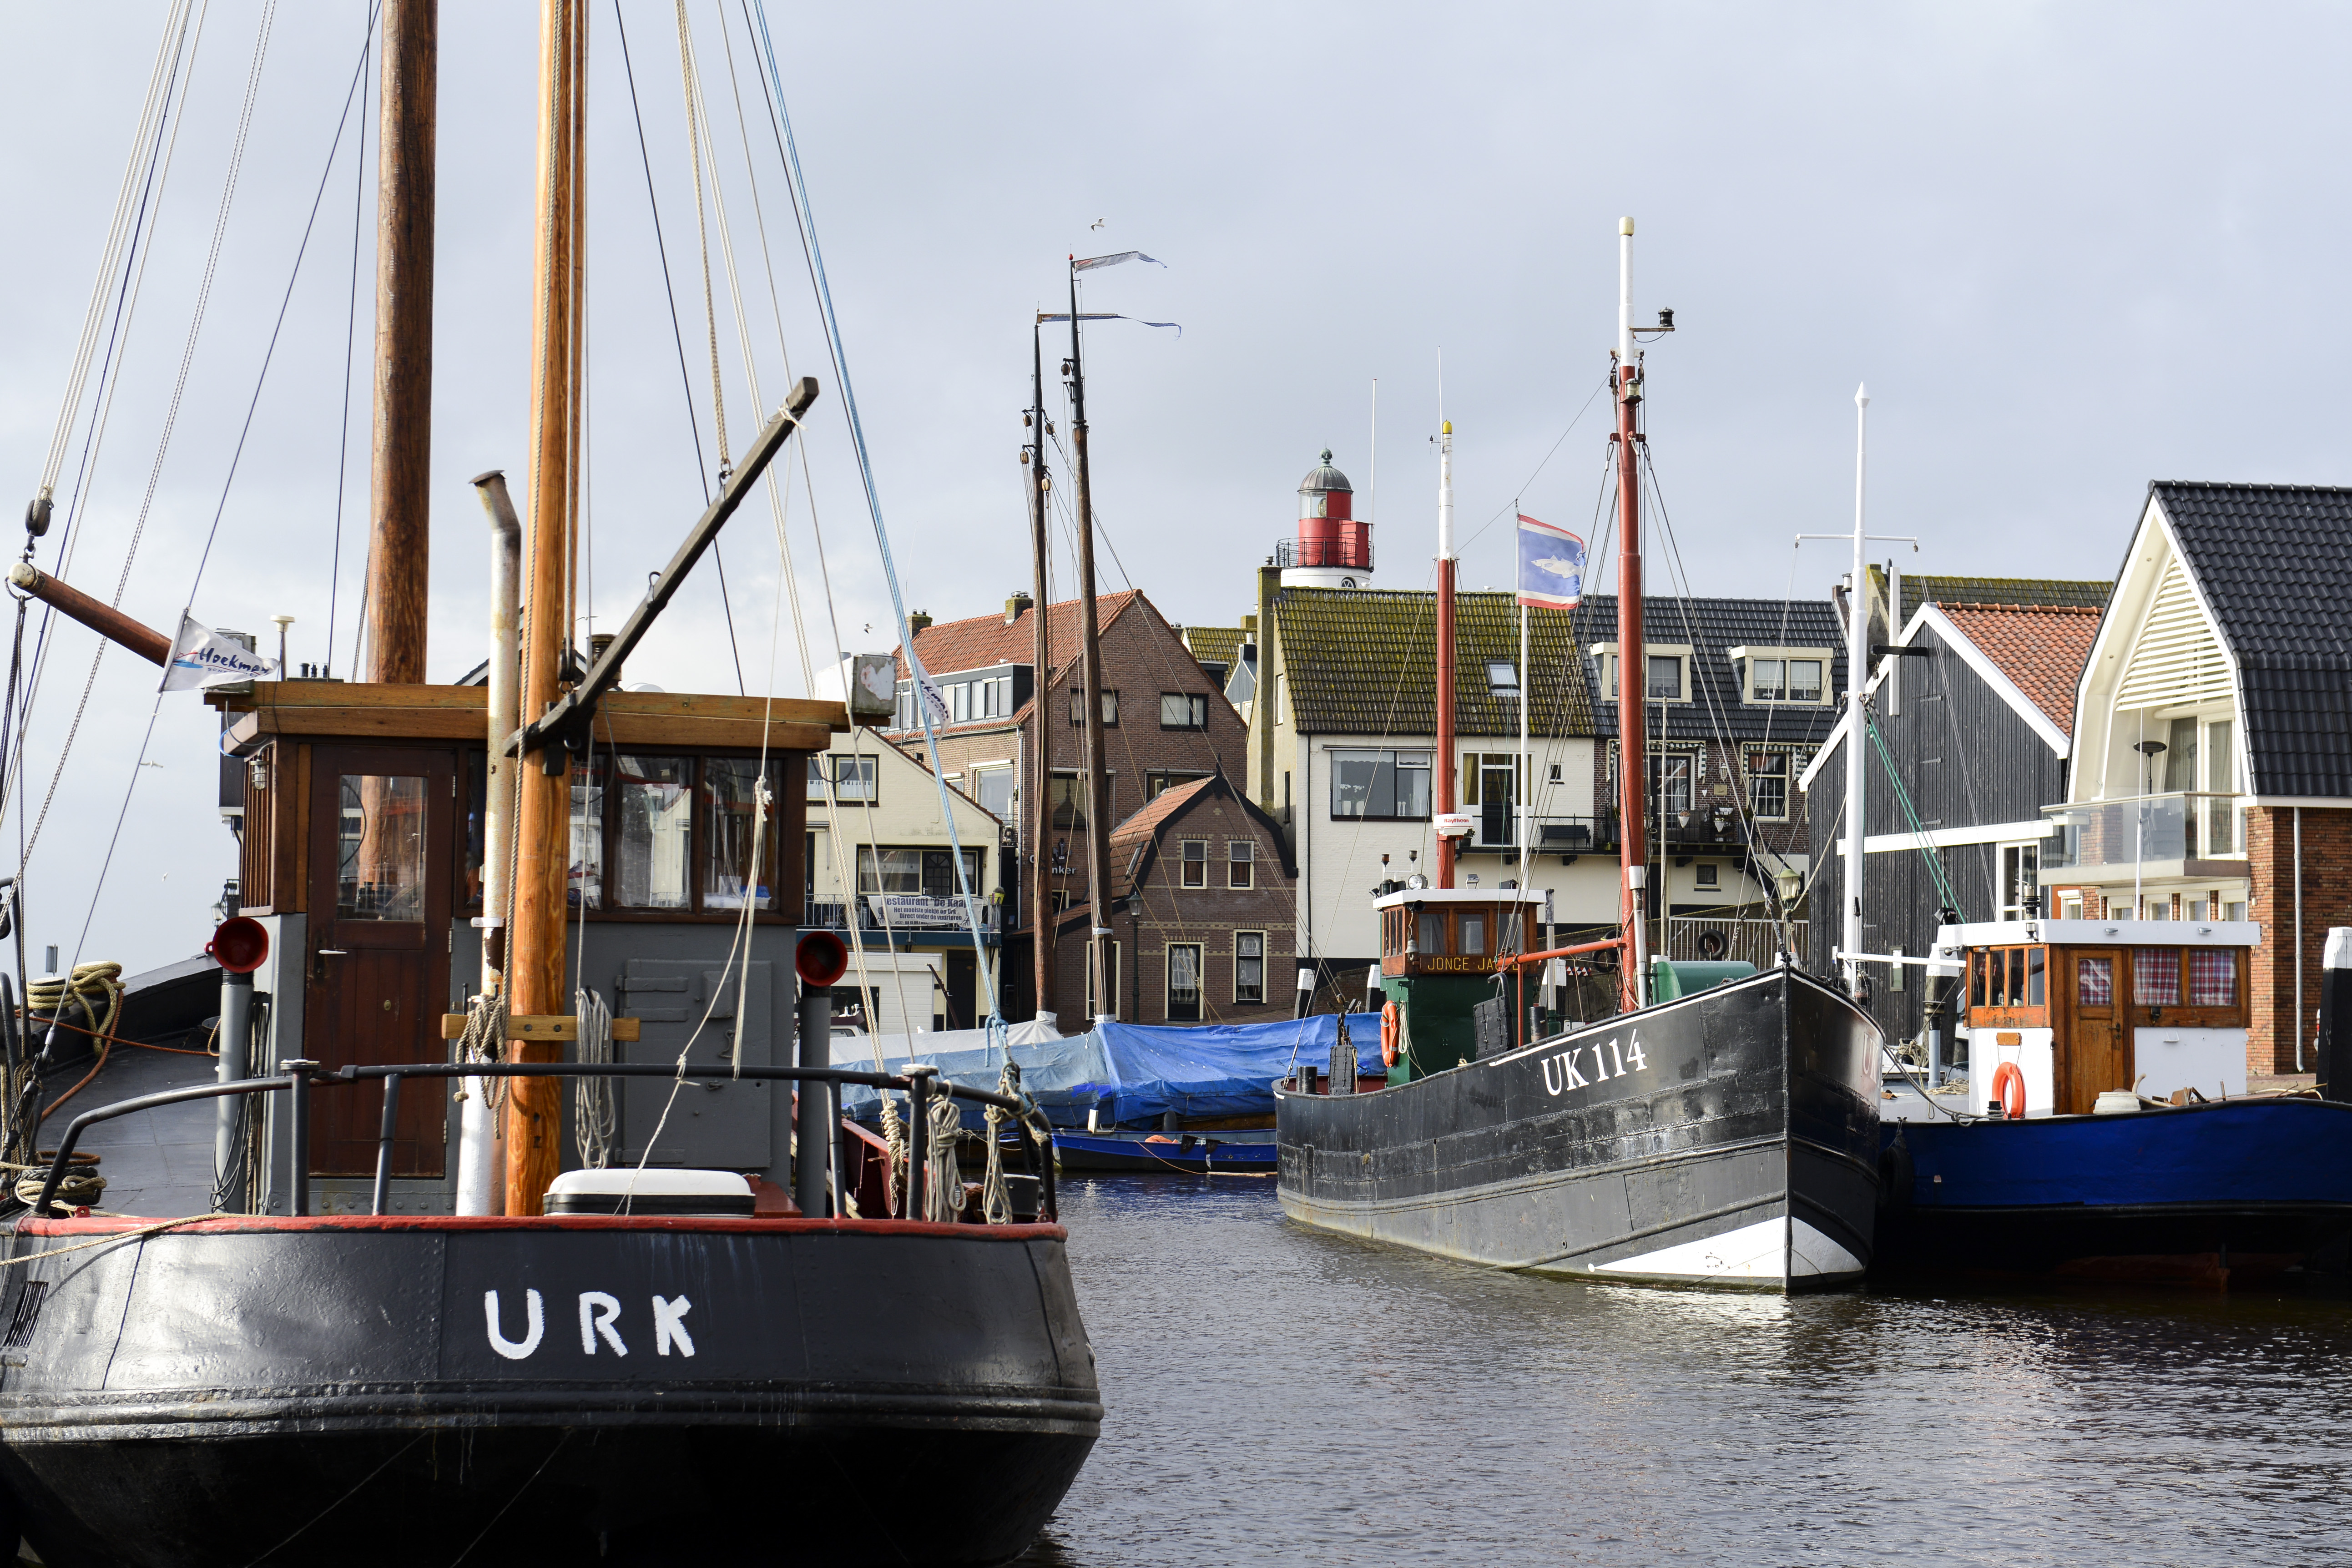 Urk To Host Massive Dunkirk Film Crew As Ijsselmeer Takes Centre Stage Dutchnews Nl